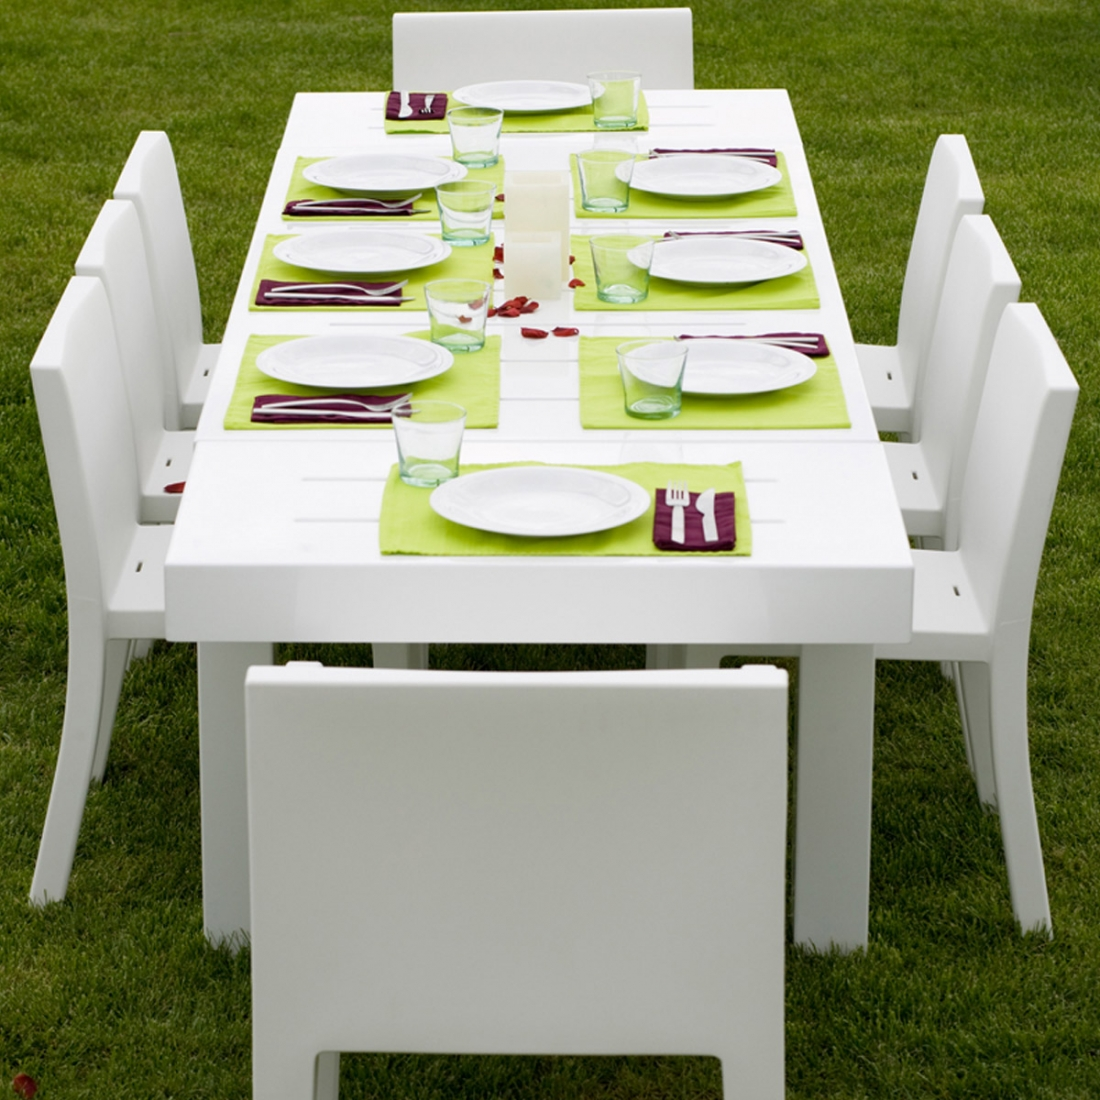 Table de jardin design 12 personnes jut par vondom for Table 12 personnes